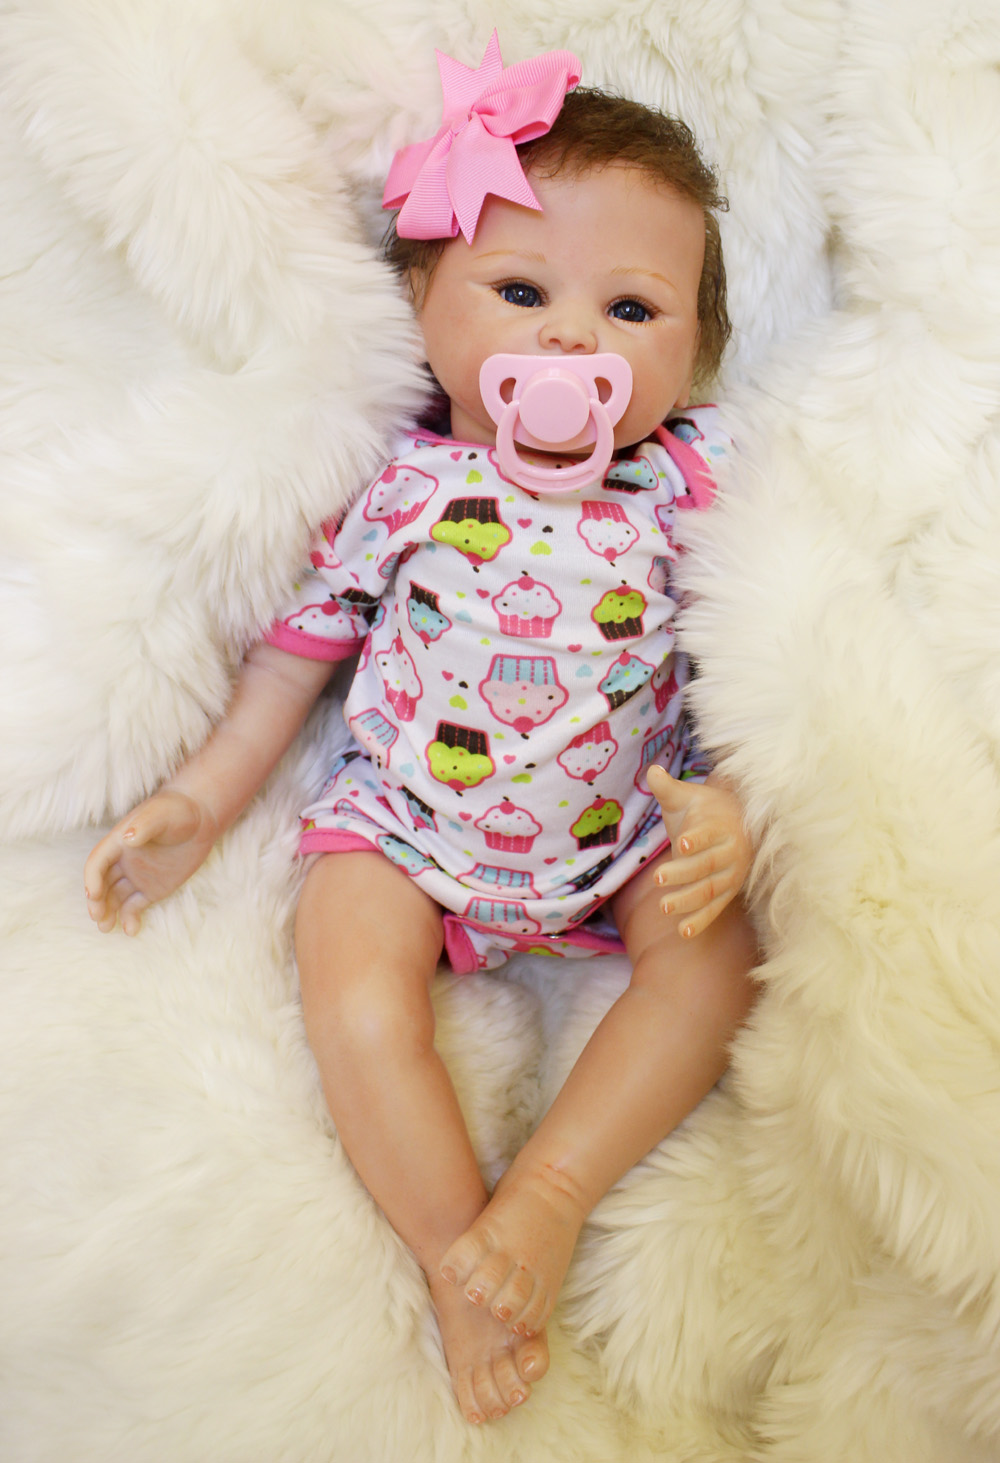 45cm Lovely high quality soft baby reborn doll Silicone cotton dolls the best birthday New Year gift for children kids toy lovely sing dance dog toy pusheen cotton soft plush hold doll antistress for children baby